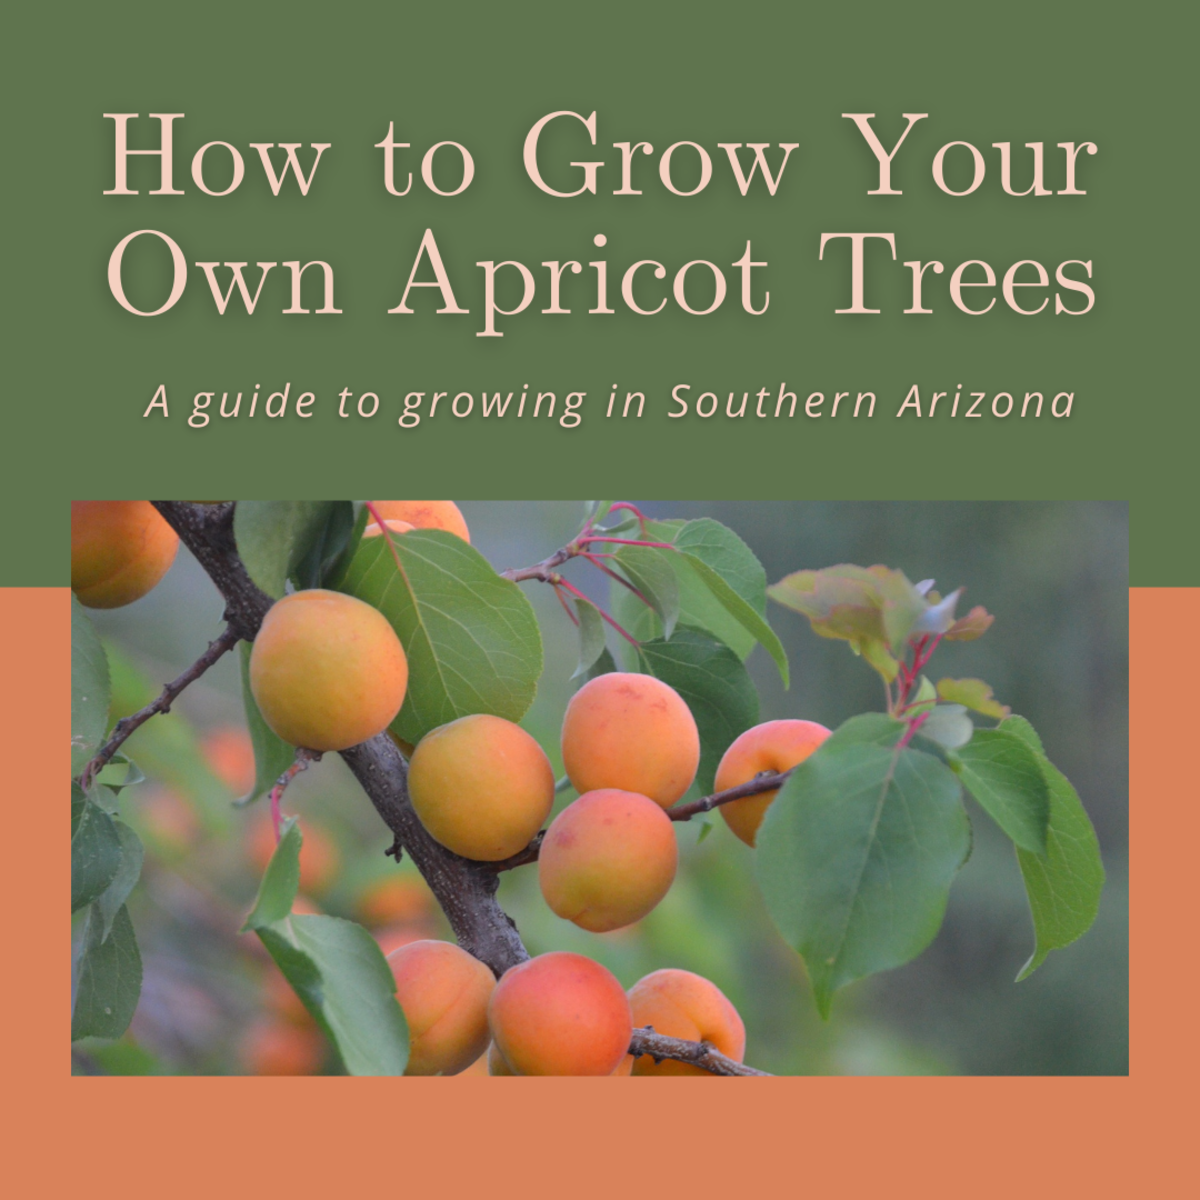 This guide will break down how to grow apricot trees in Southern Arizona.